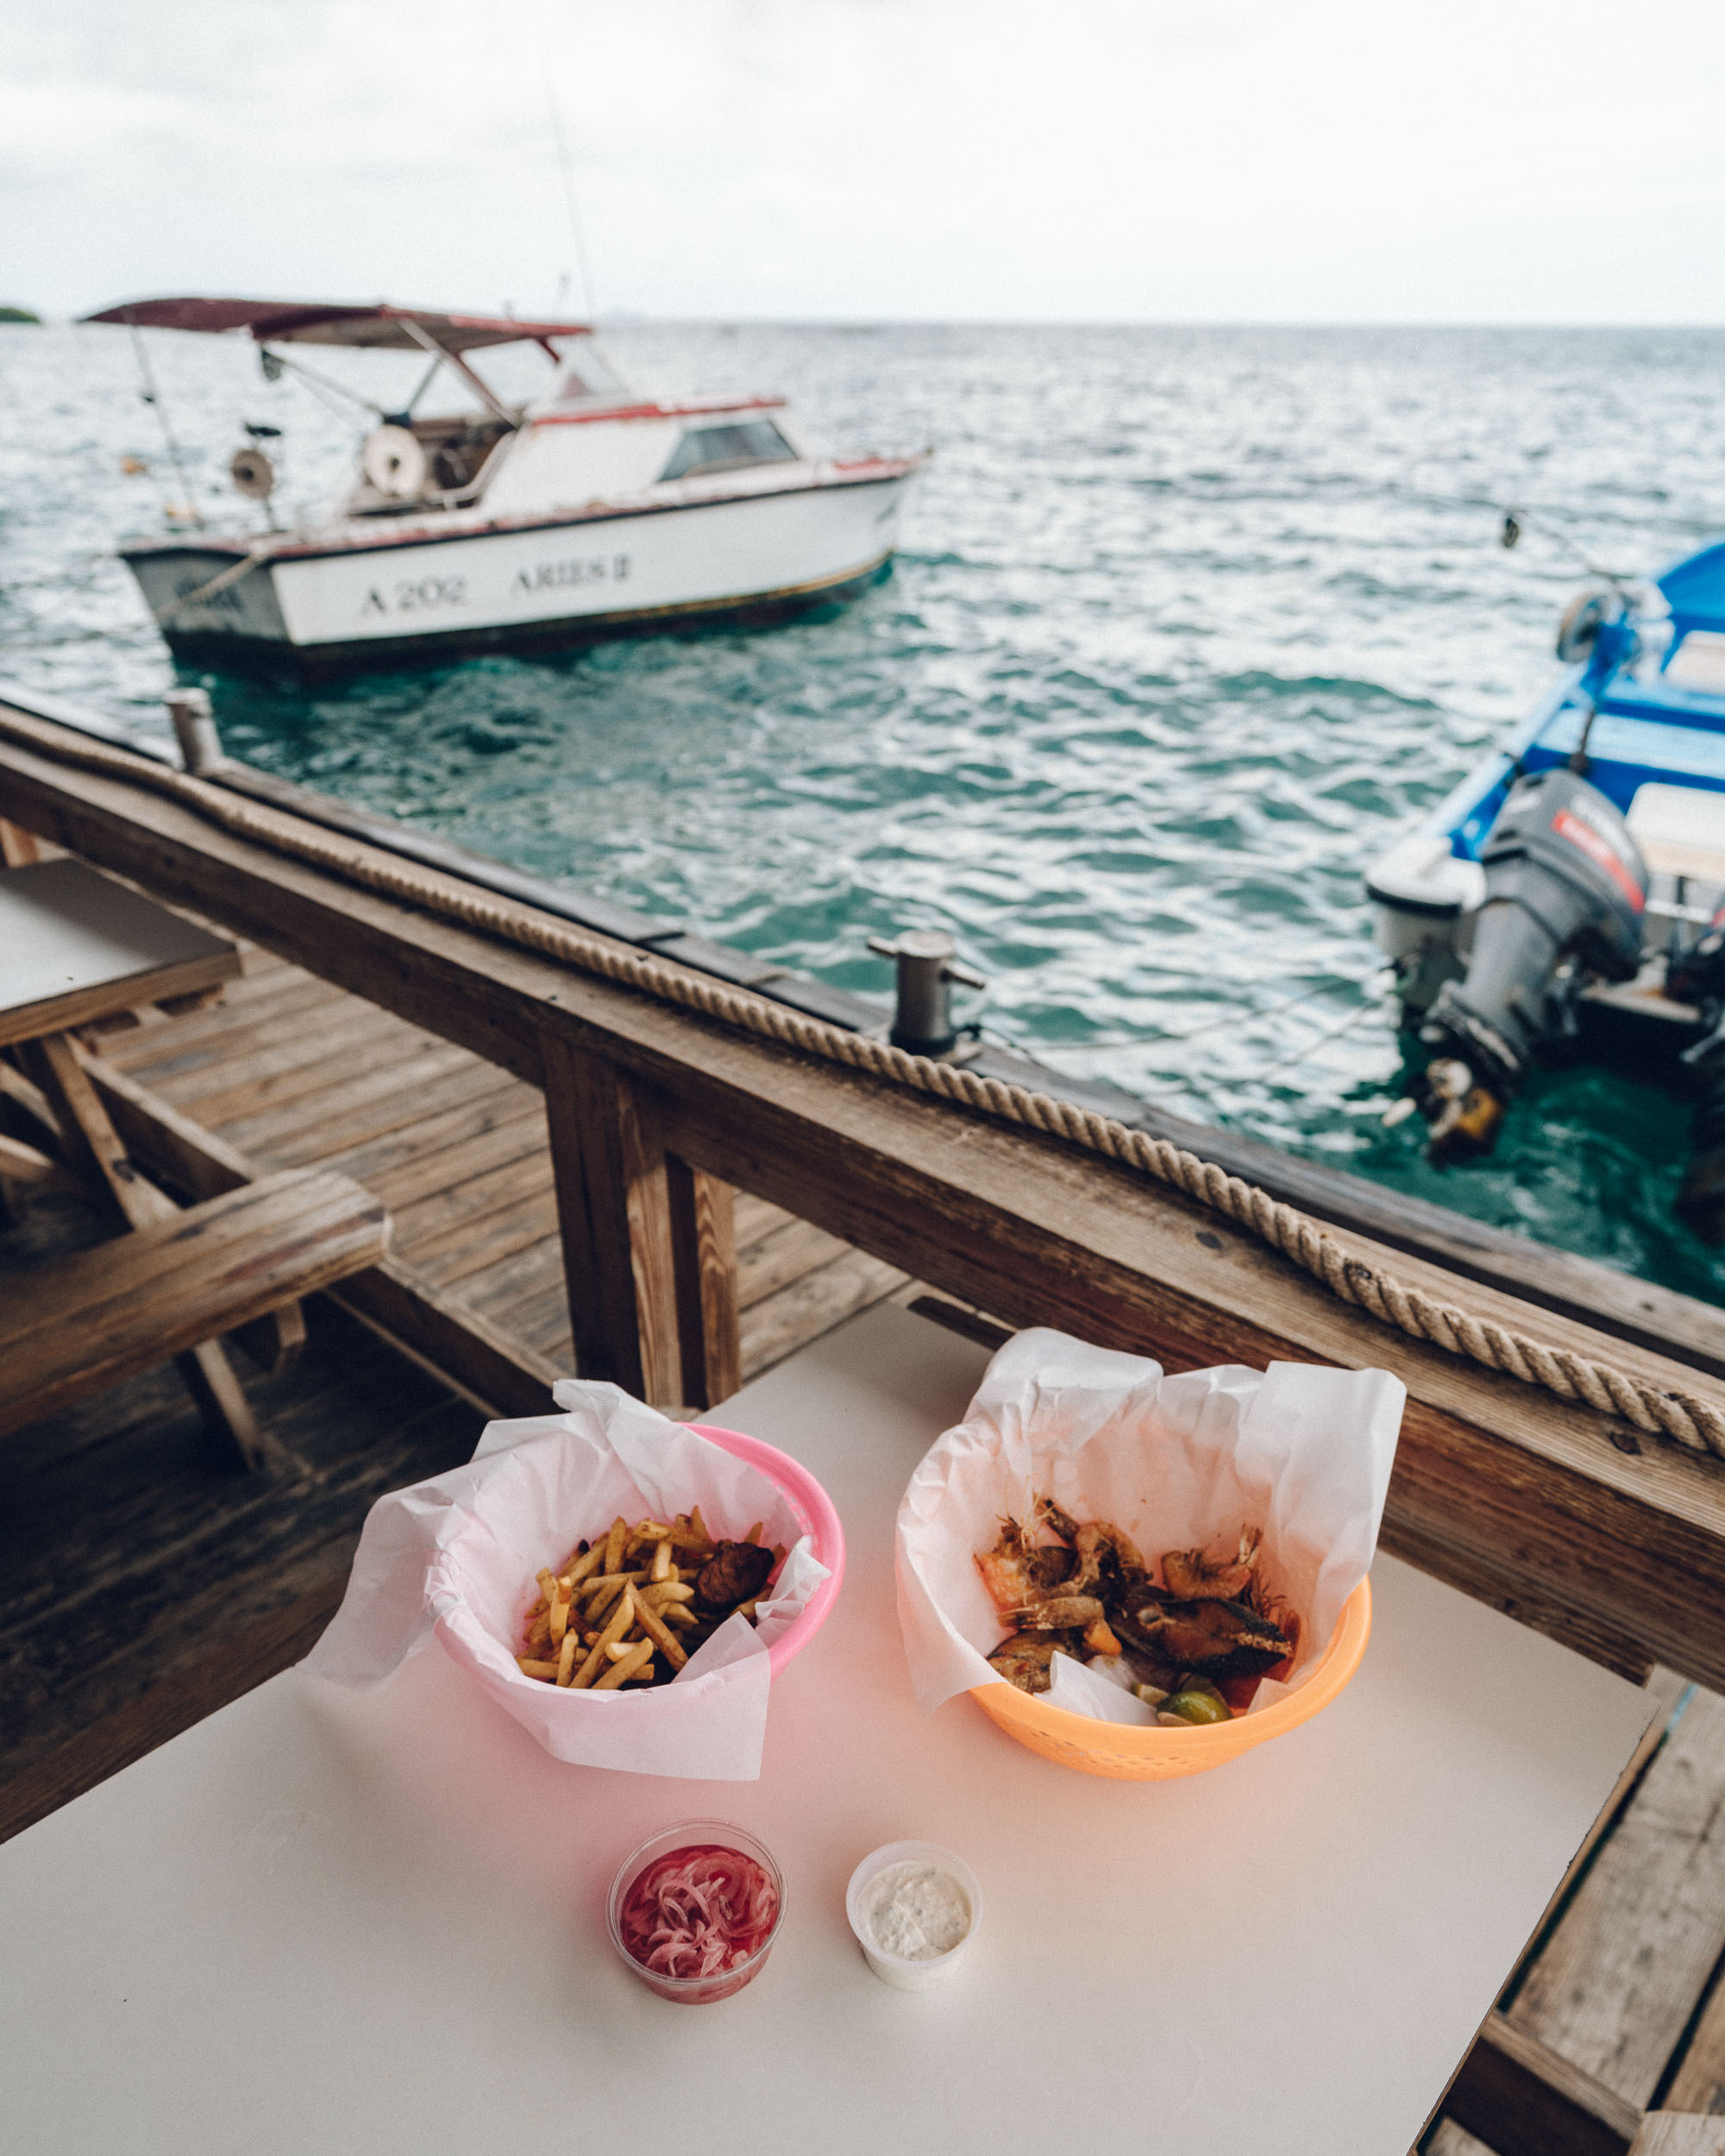 Zee Rovers for seaside lunch and fresh fish in Aruba via Find Us Lost